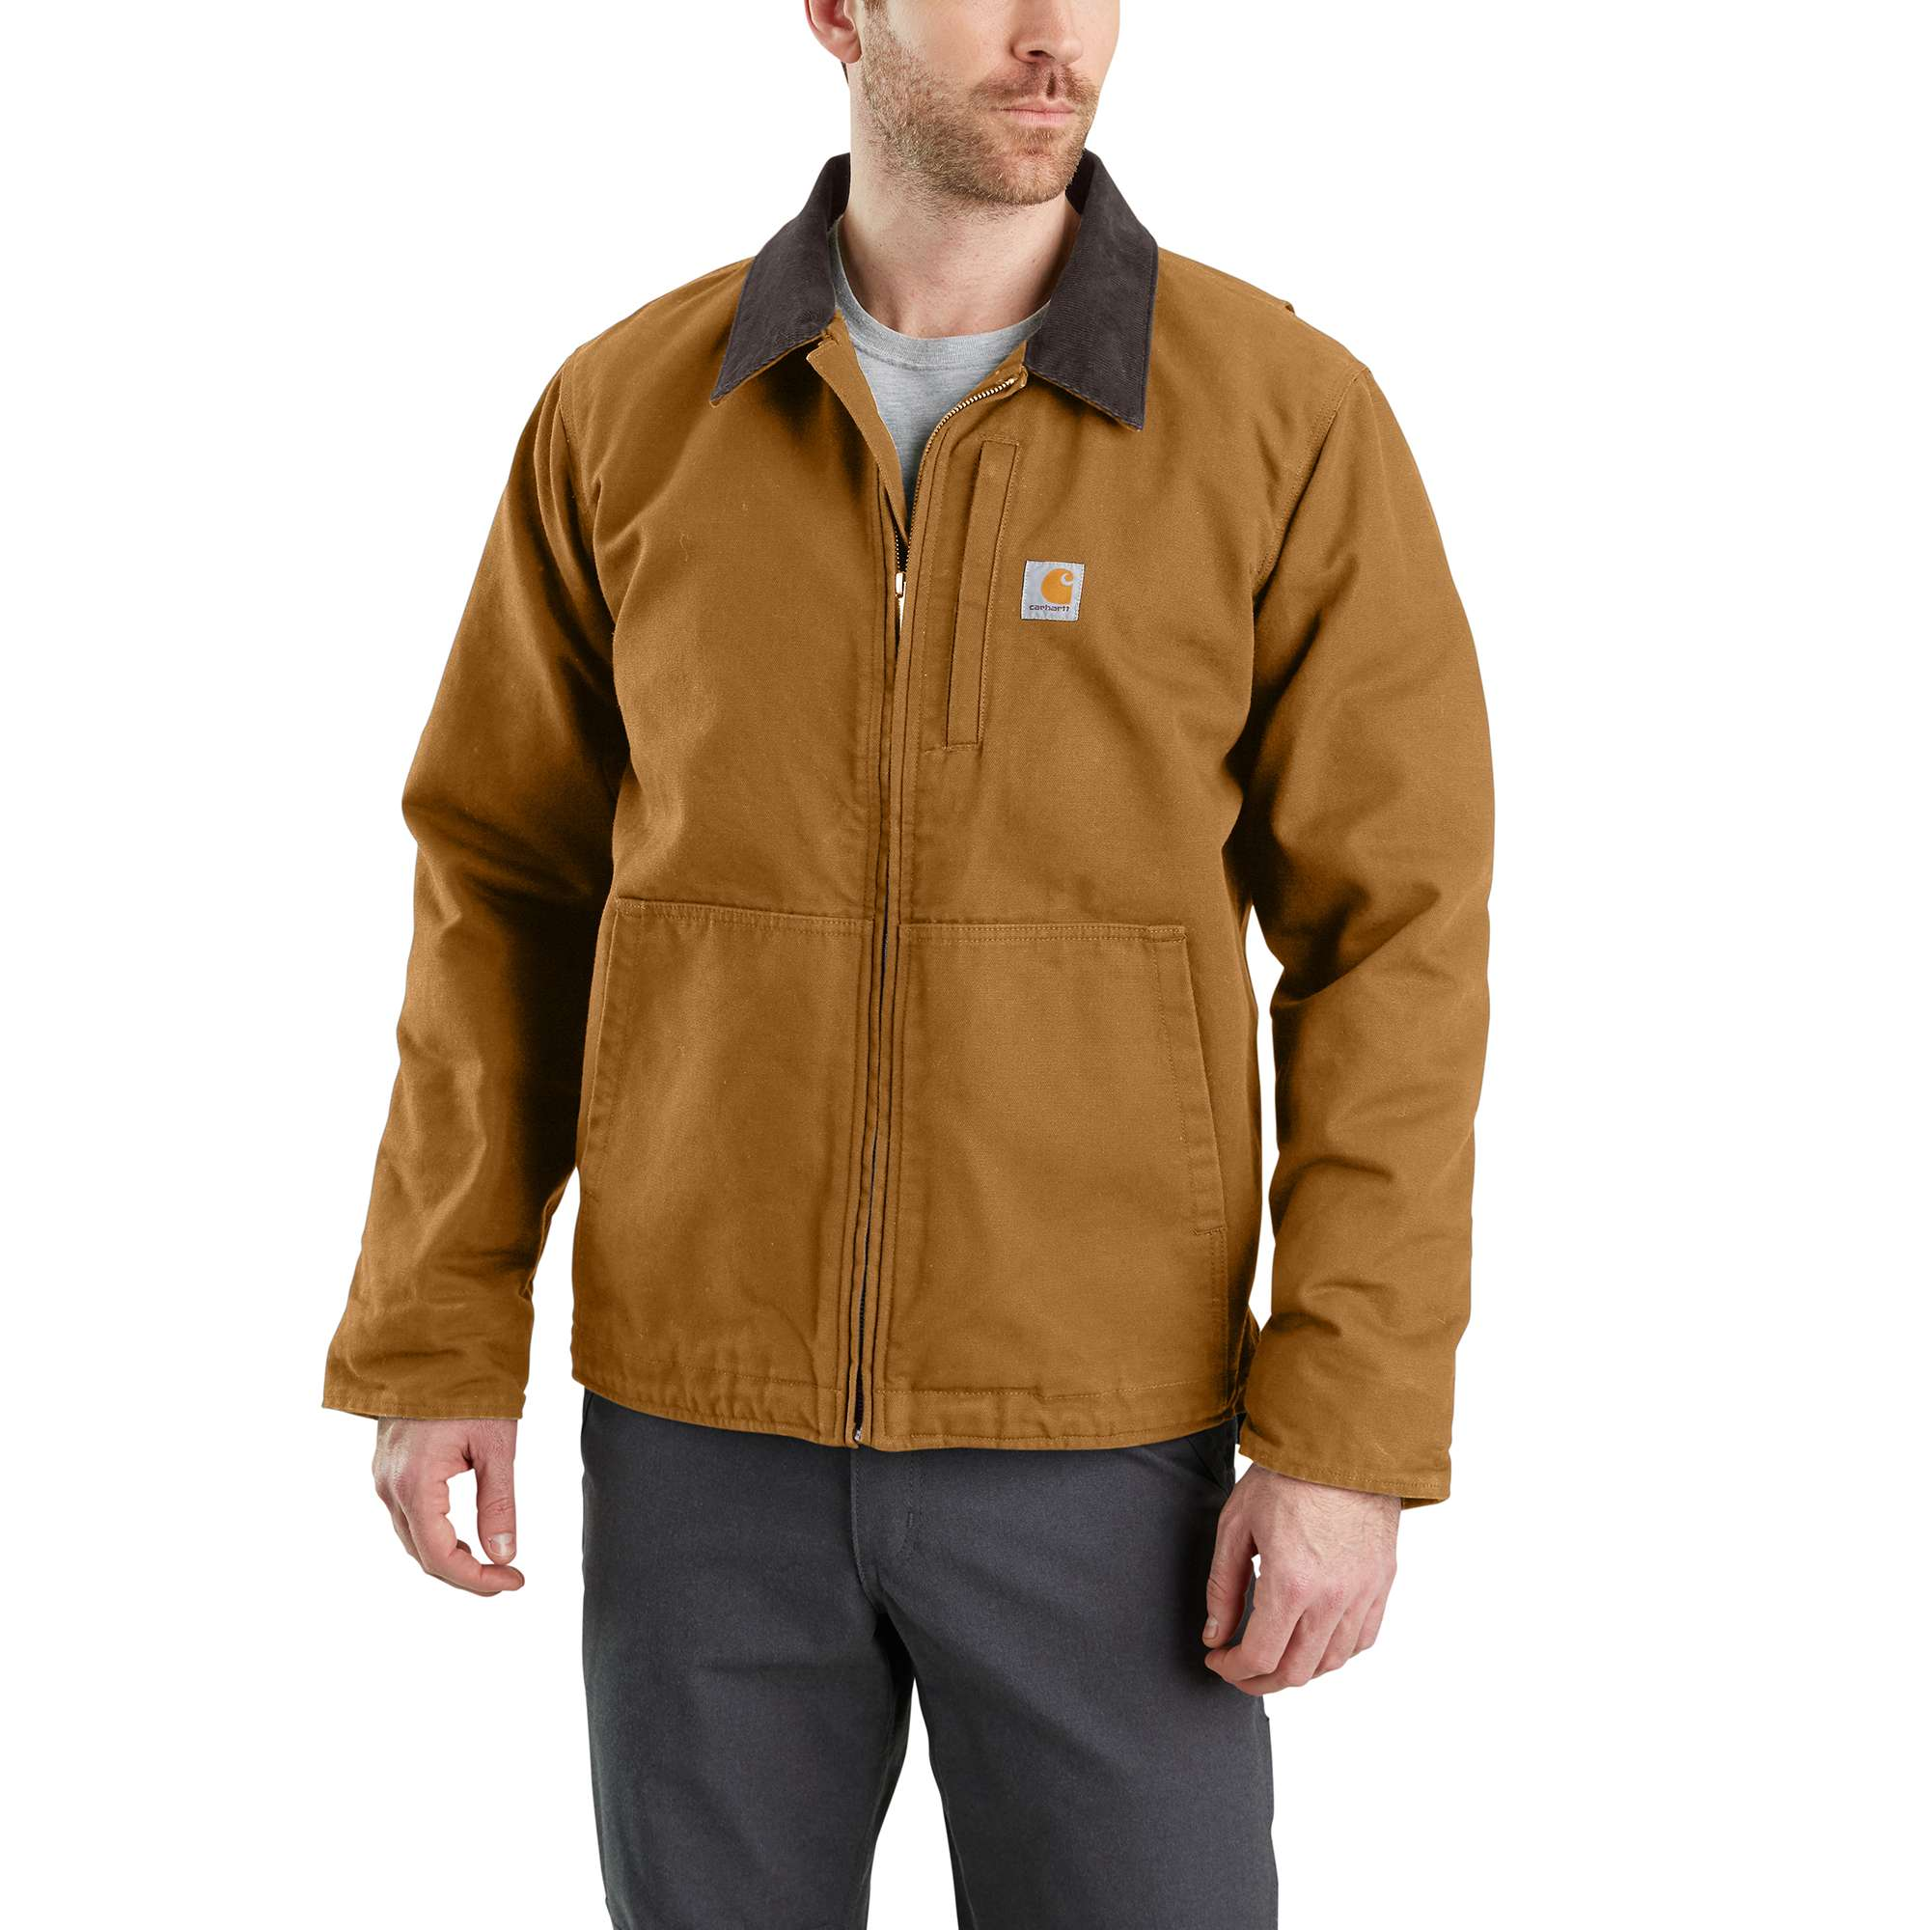 Duck Fabric Technology Carhartt